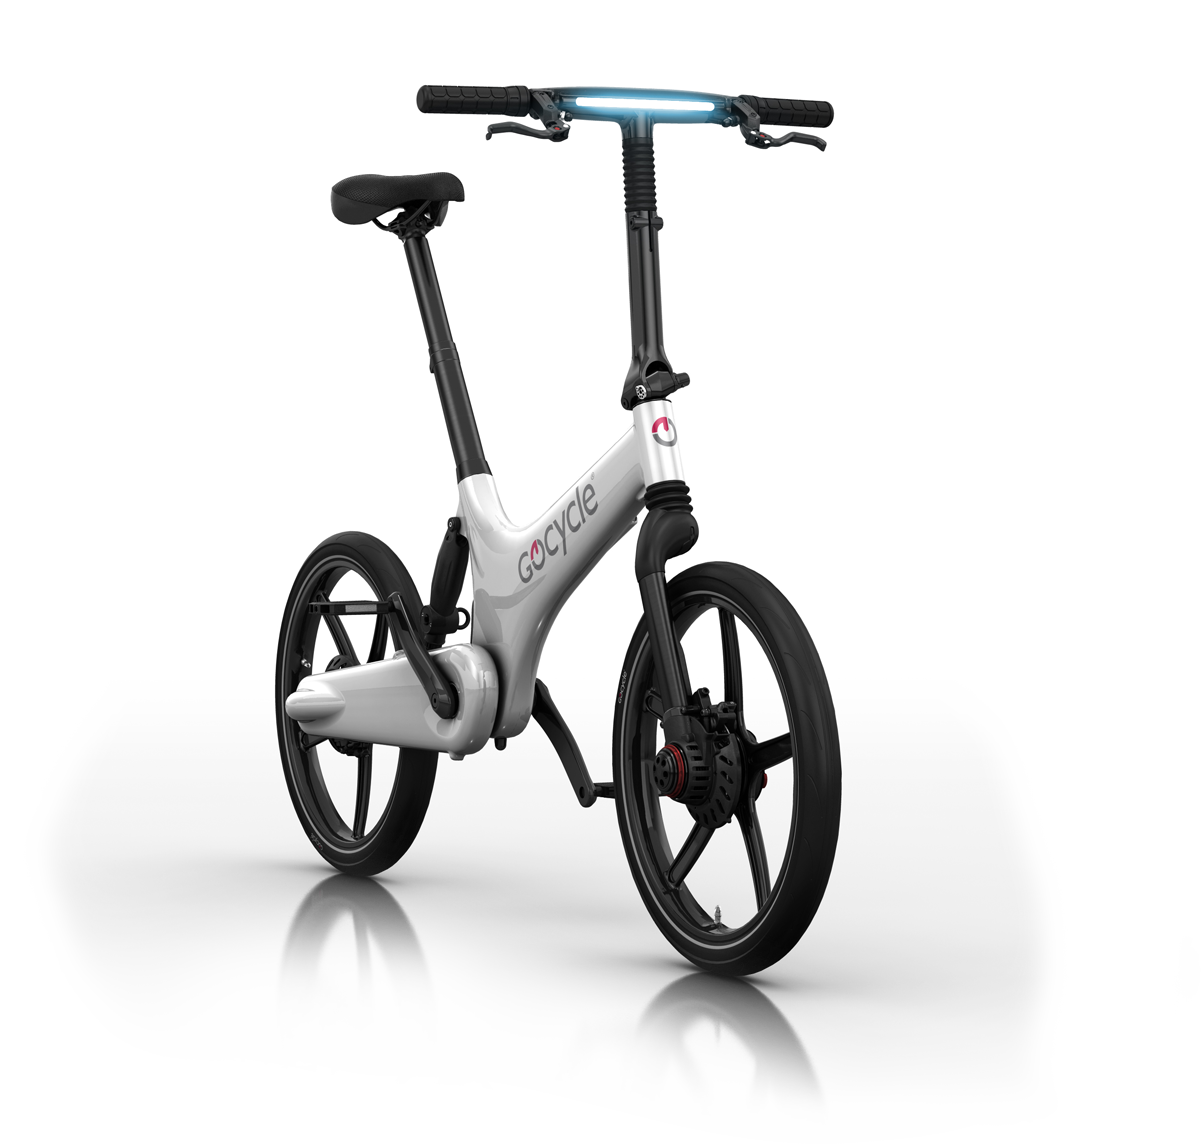 Gocycle bike